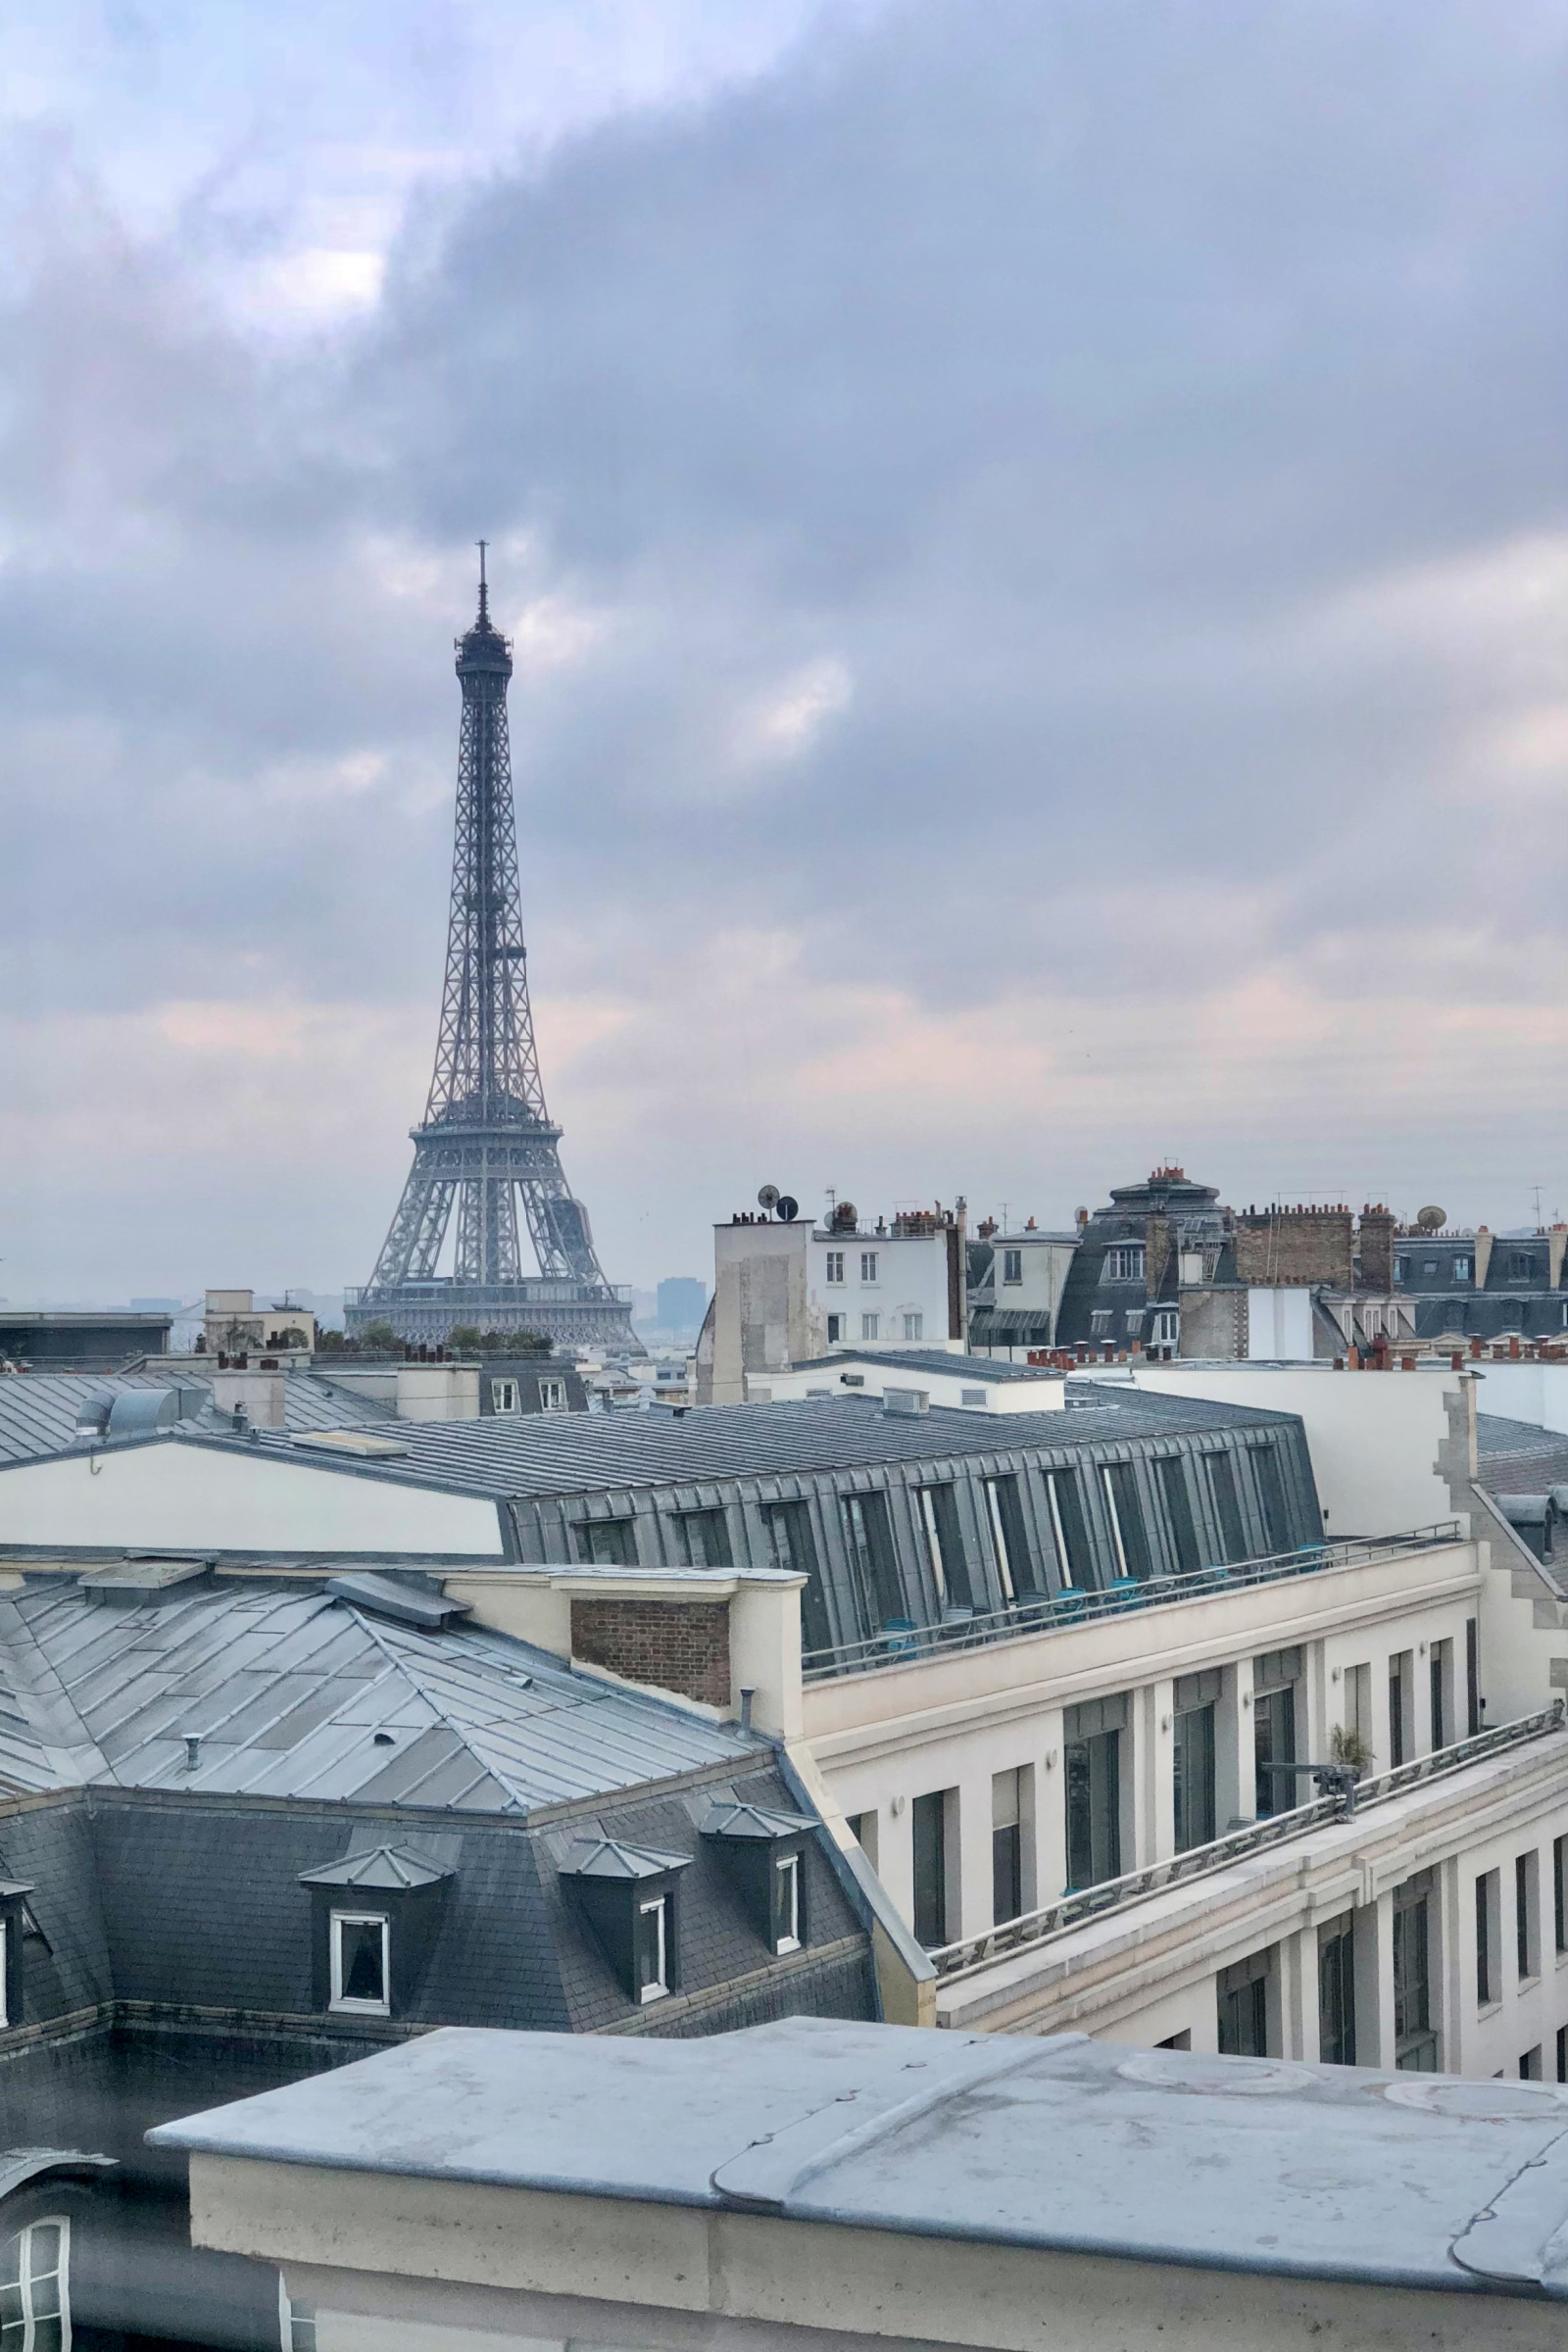 The Best Places to See the Eiffel Tower